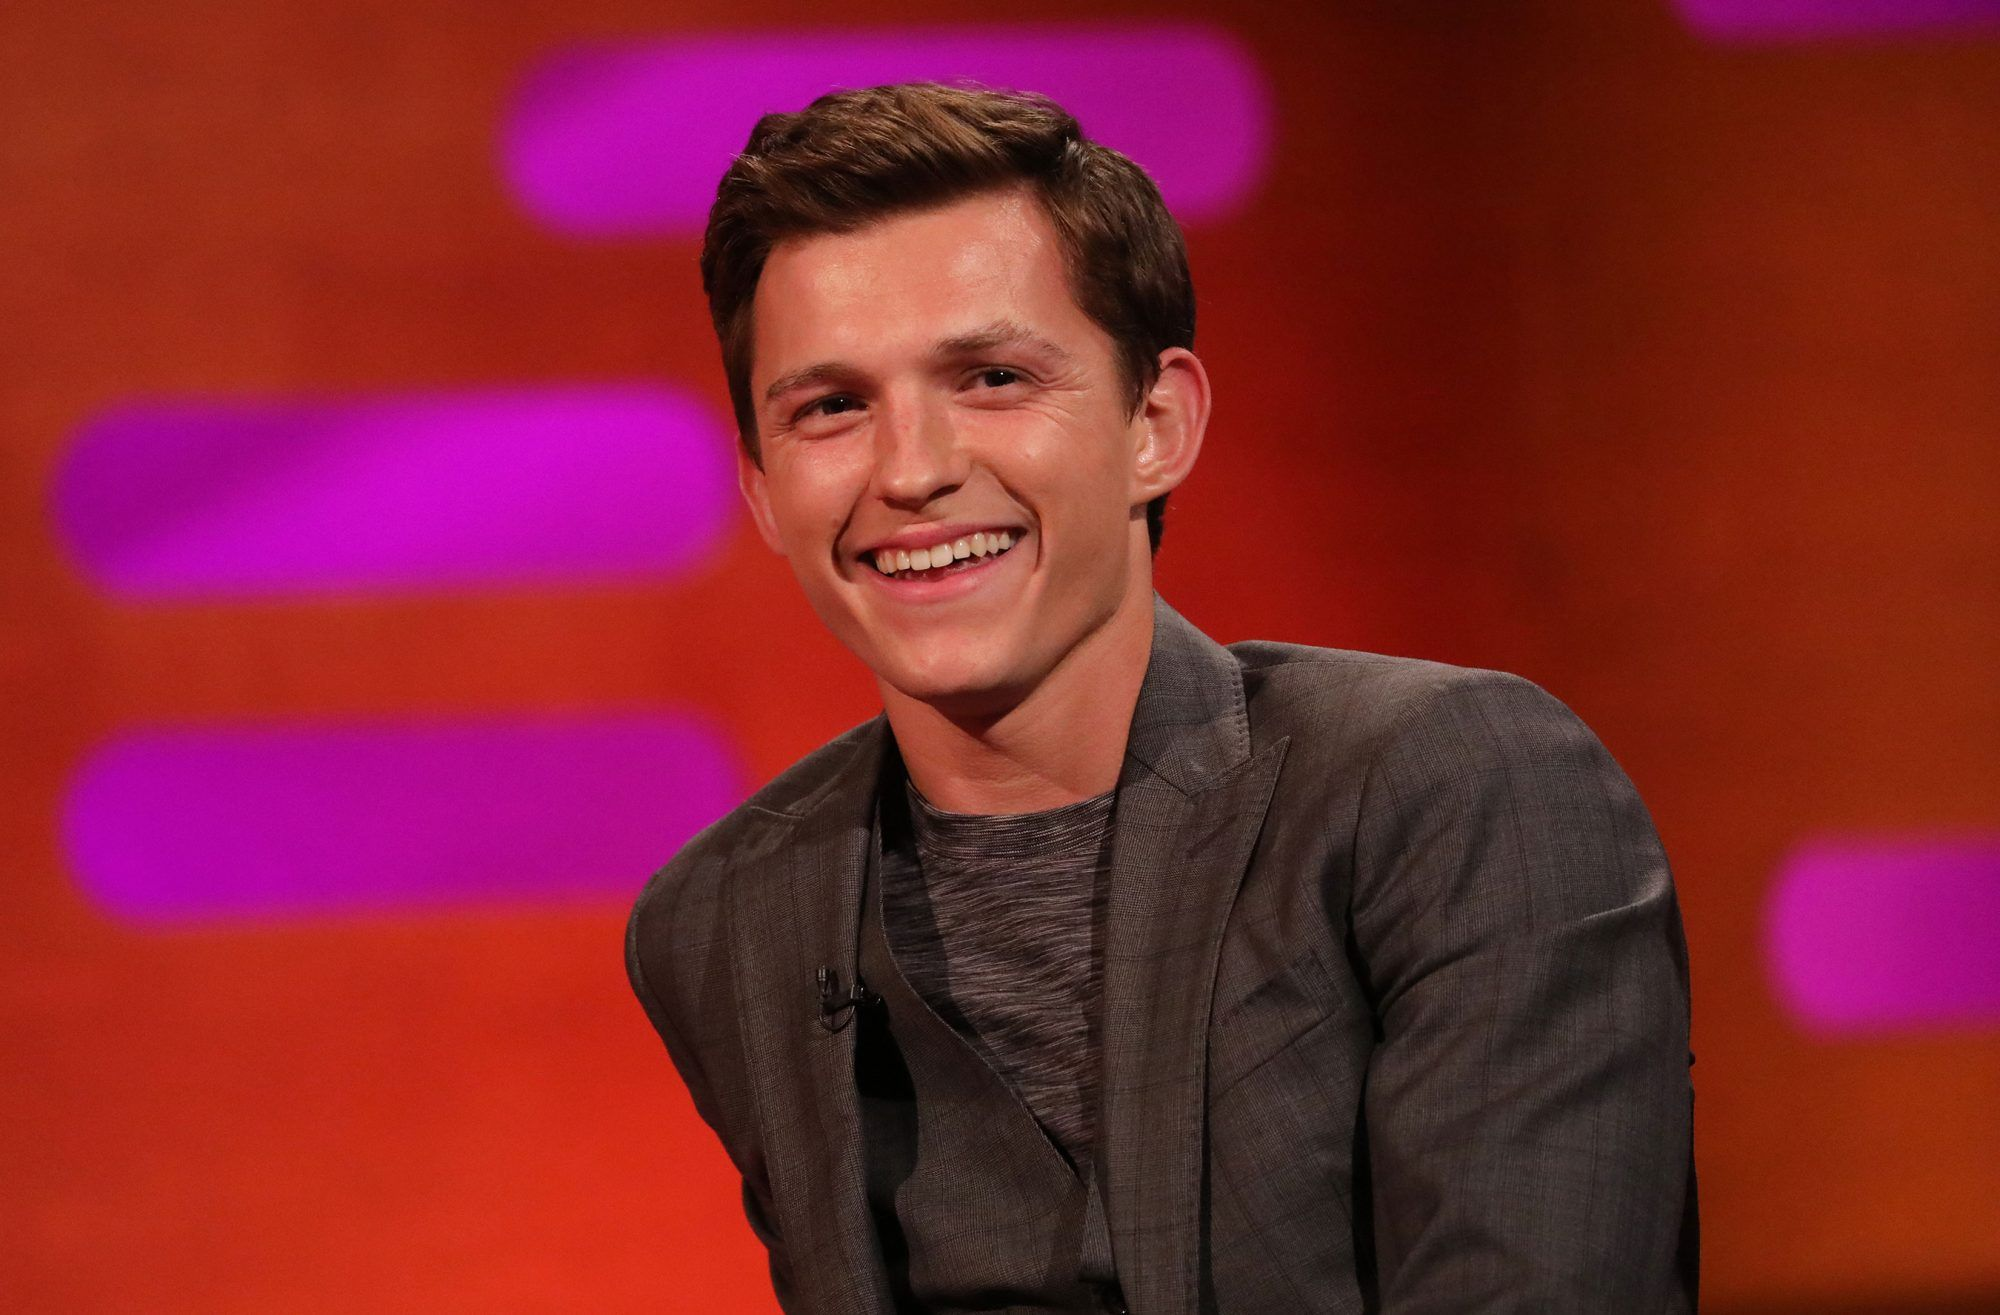 Tom Holland continues spoiler streak, reveals 'Avengers: Endgame' death on 'Graham Norton Show'